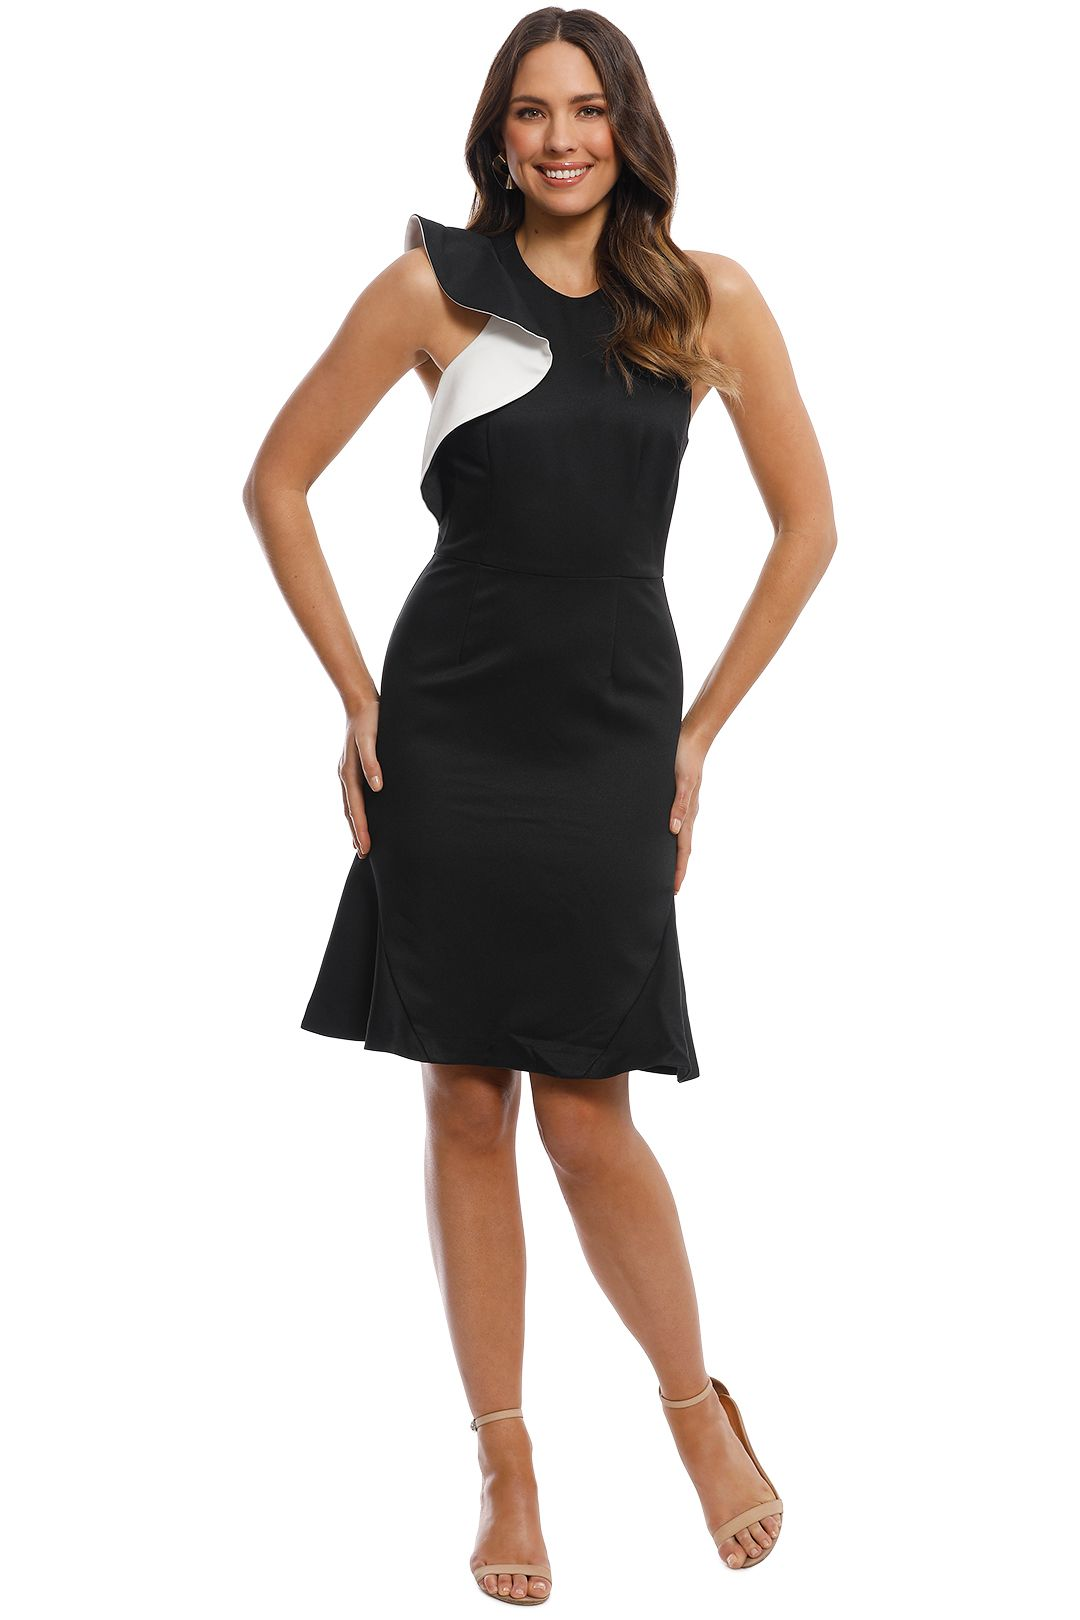 Cooper St - Jasmine High Neck Fitted Dress - Black - Front